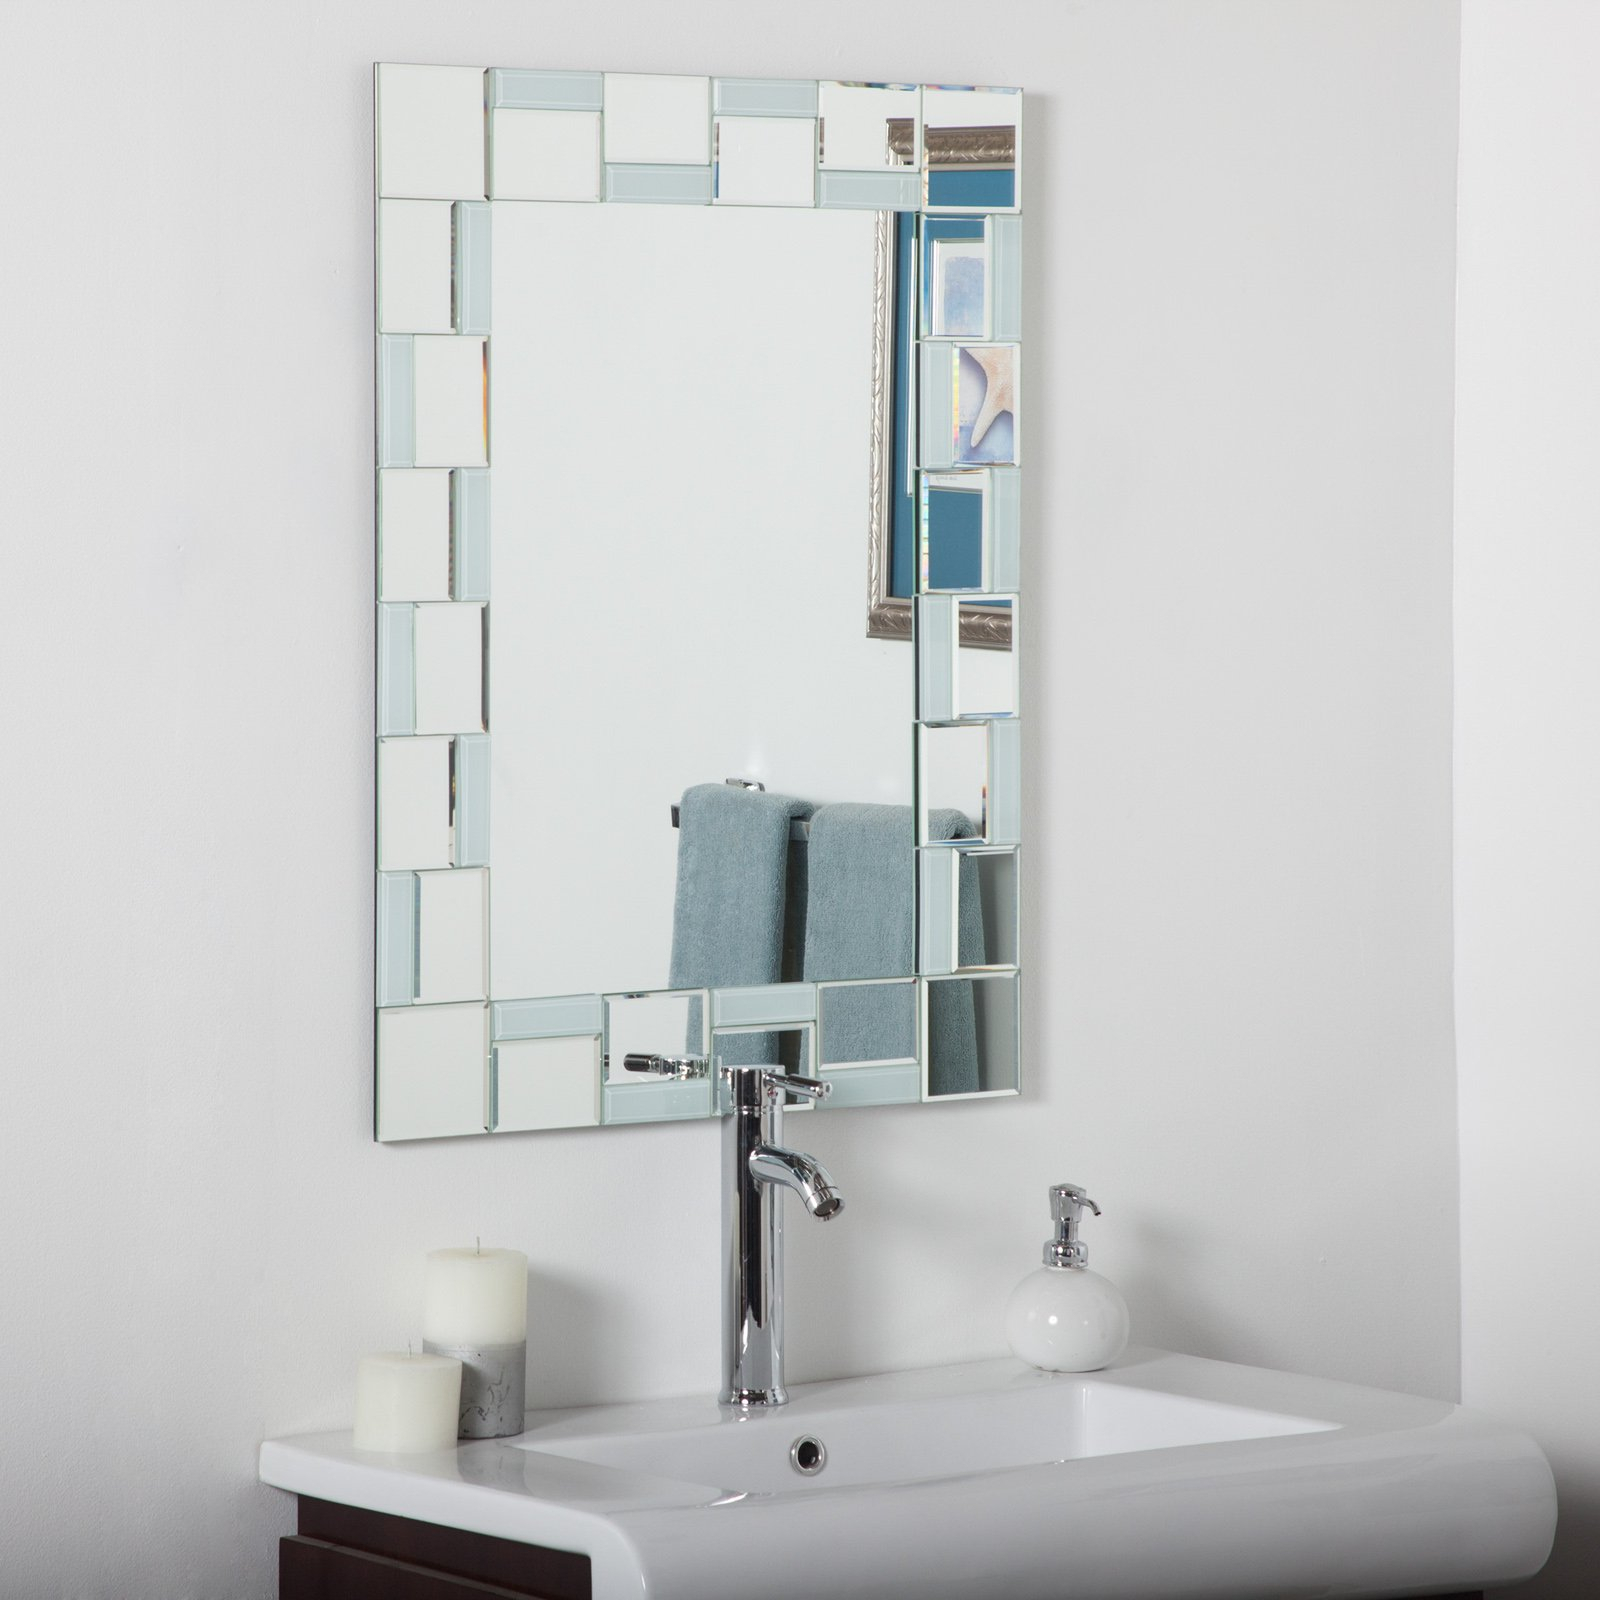 Luury Classic Mirrors Design Oval Nice Modern Bathroom With Regard To Industrial Modern & Contemporary Wall Mirrors (View 10 of 20)